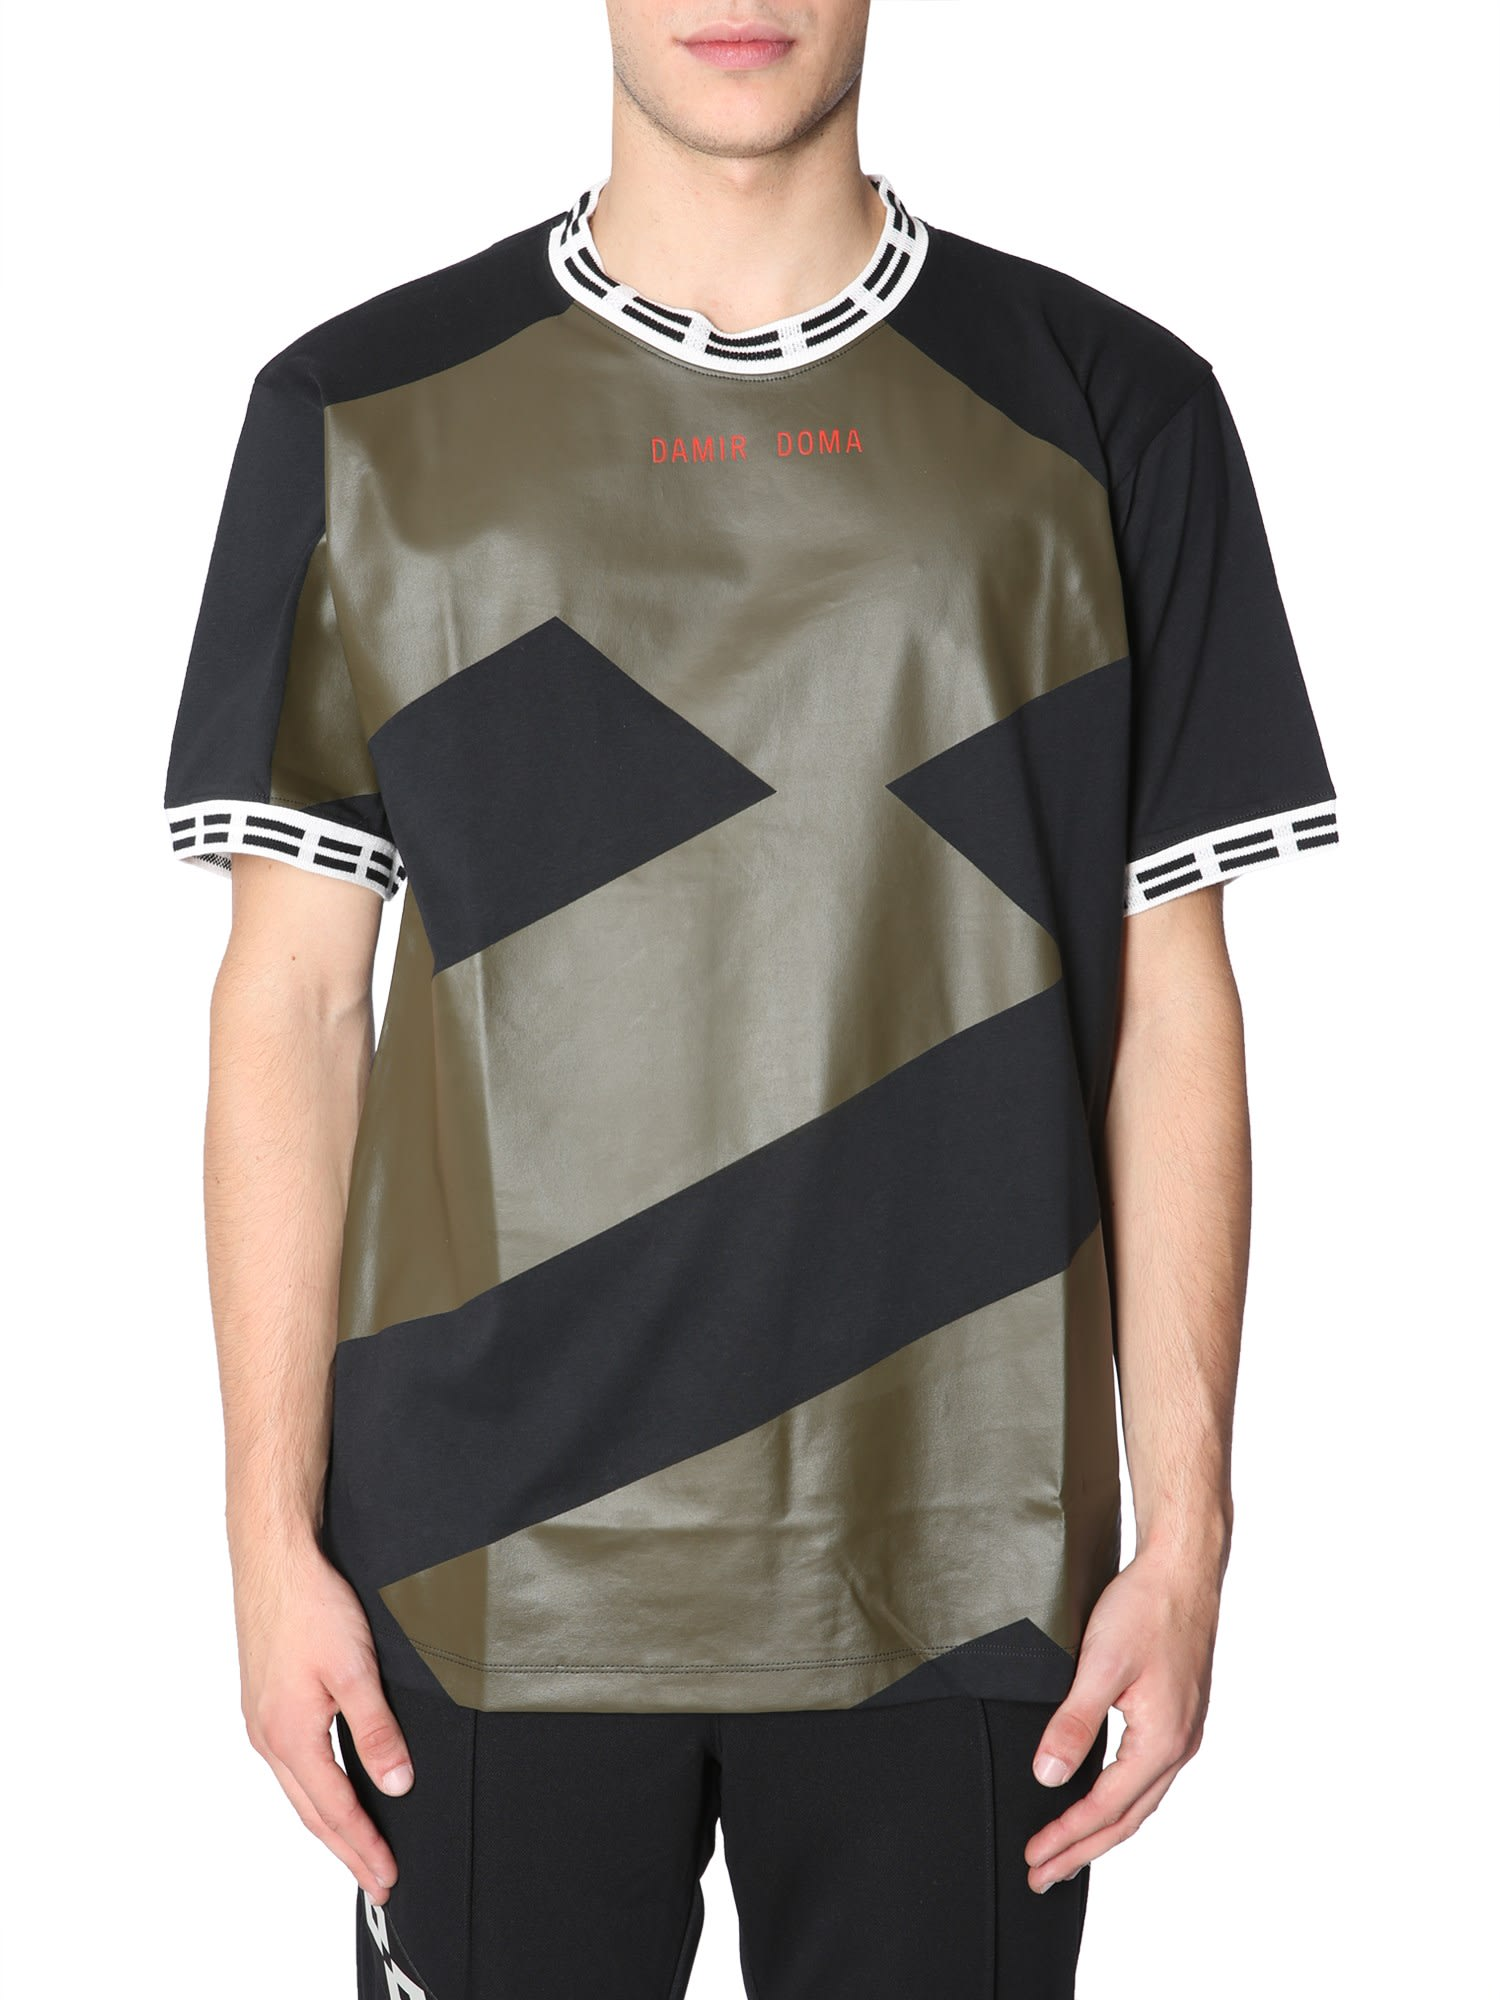 Damir Doma Lotto Teijo T Shirt